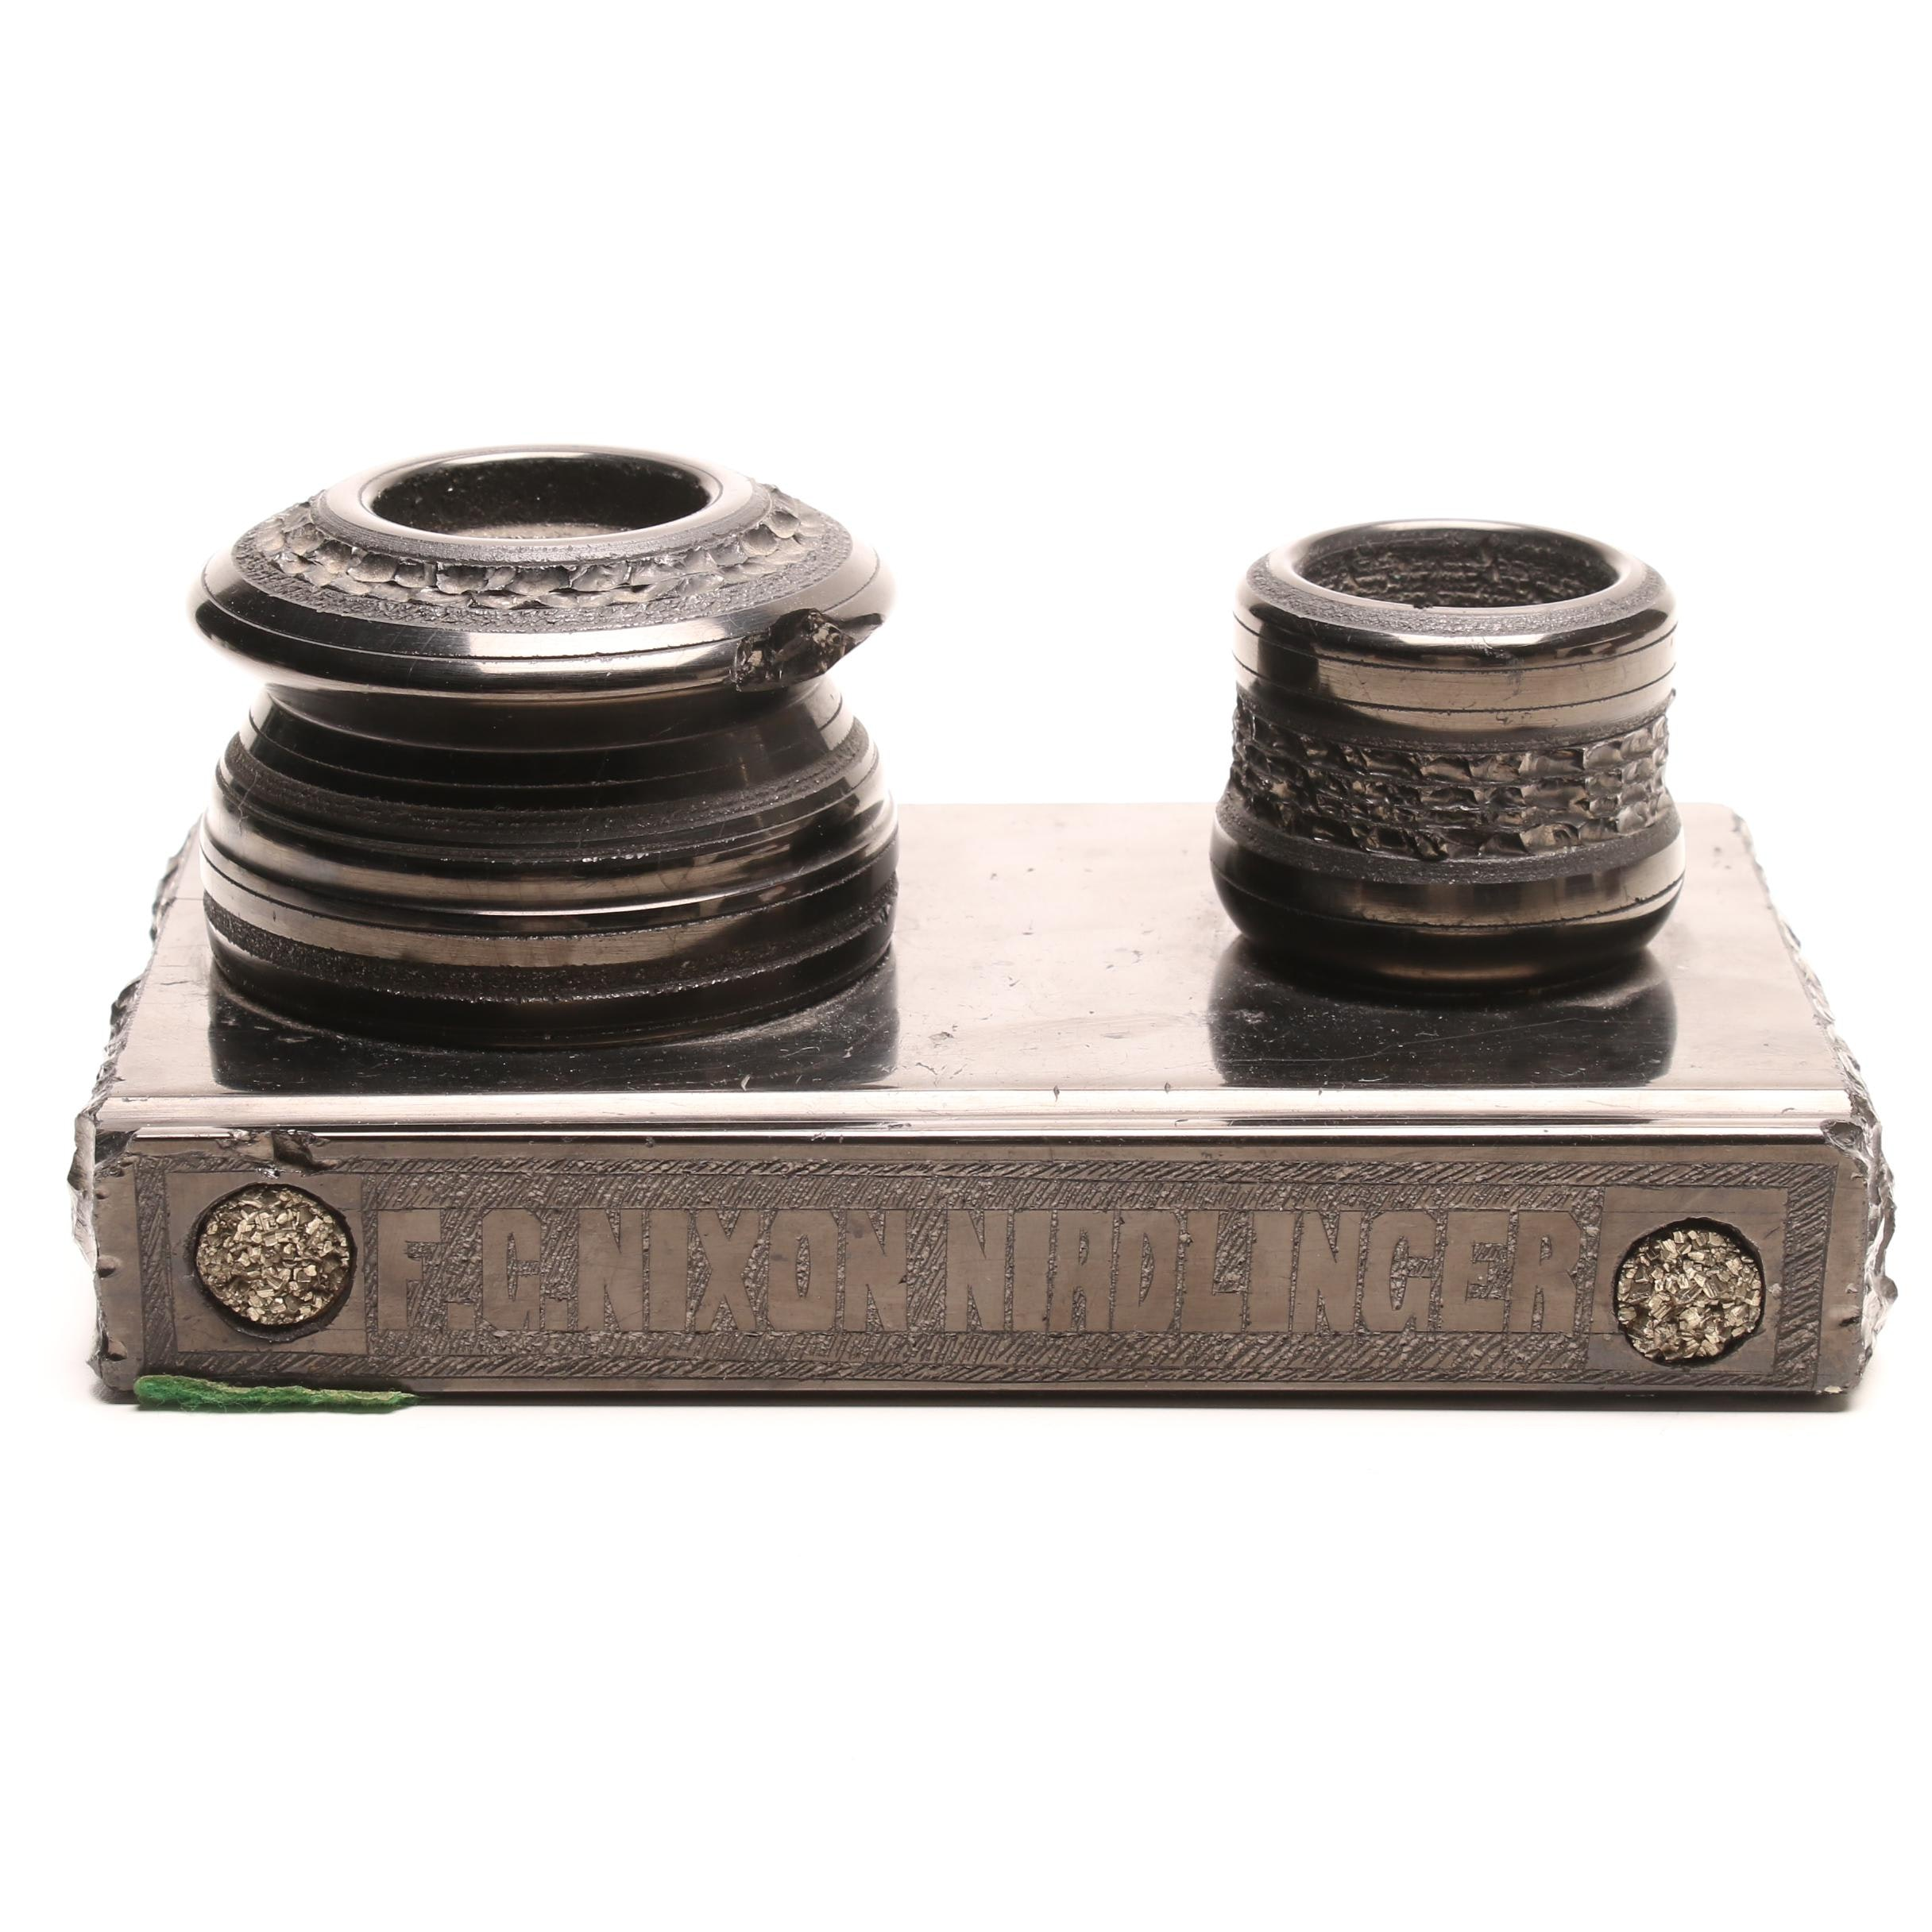 "Carved Jet and Pyrite ""F.G. Nixon-Nirdlinger"" Inkwell Pen Stand, Late 19th C."